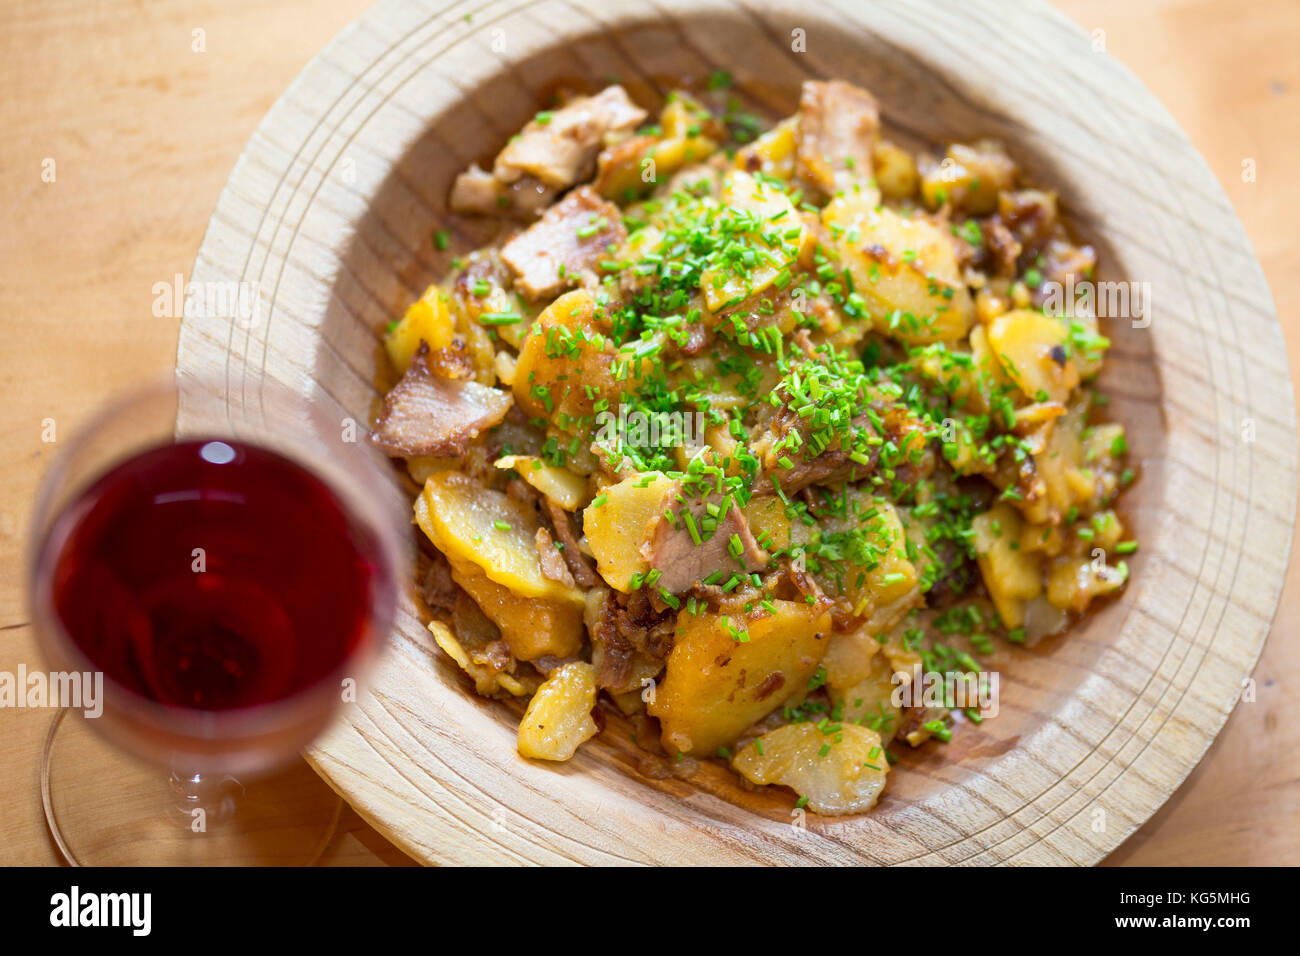 a plate of gröstl, a typical tyrolean food with meat, onions, chives and potatoes, Bolzano province, South - Stock Image